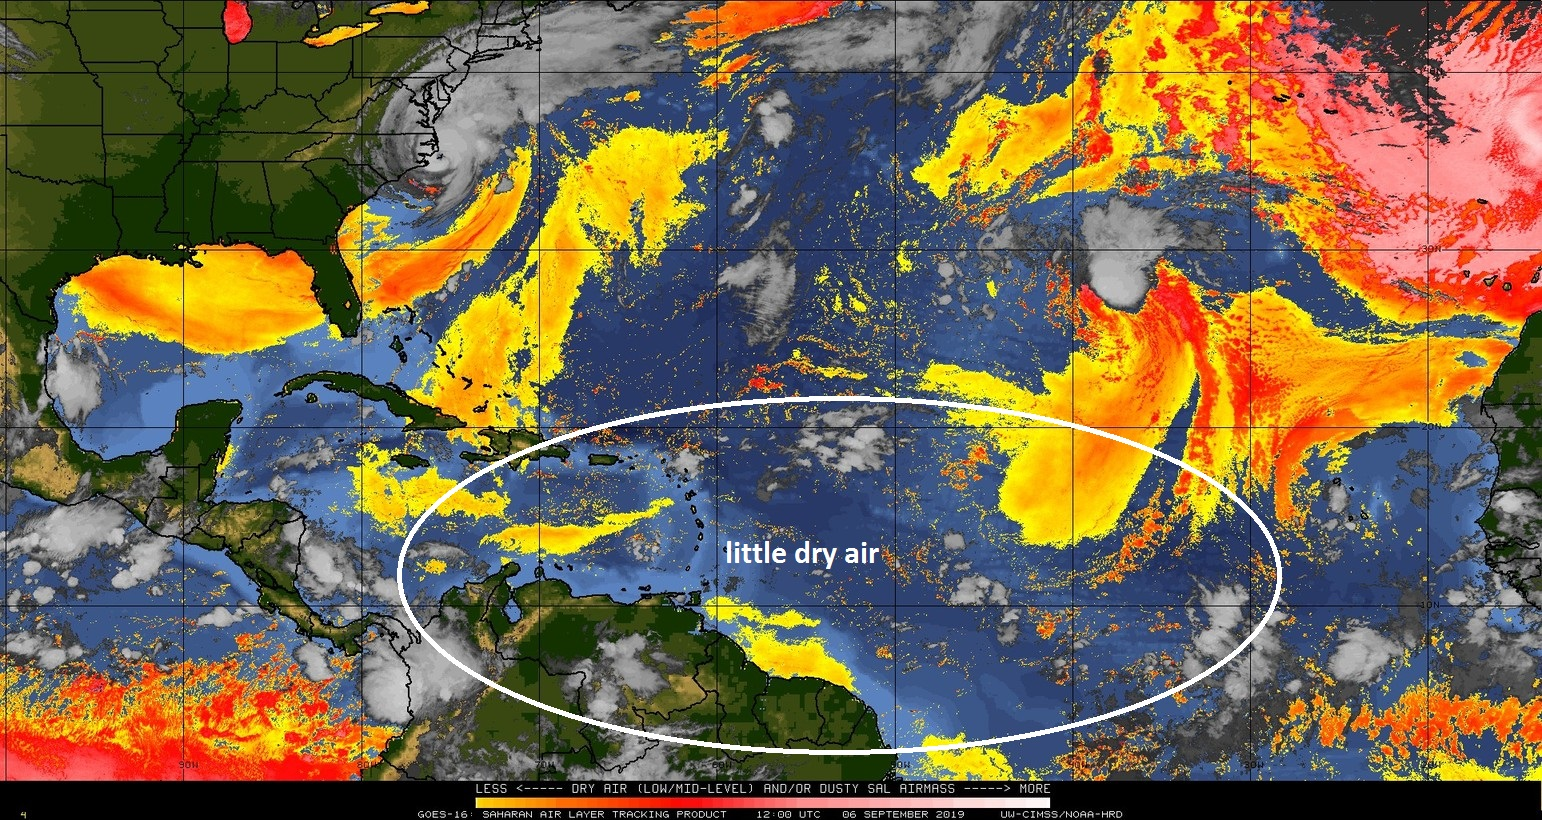 """A couple of weeks ago there was a widespread dry (Saharan Desert) air mass over the tropical Atlantic Ocean, but now there is little. The tropical wave in the eastern Atlantic (at right edge of circle) has an """"atmospheric opening"""" to trek westward in coming days towards the Caribbean Sea. Courtesy NOAA, CIMSS Wisconsin"""